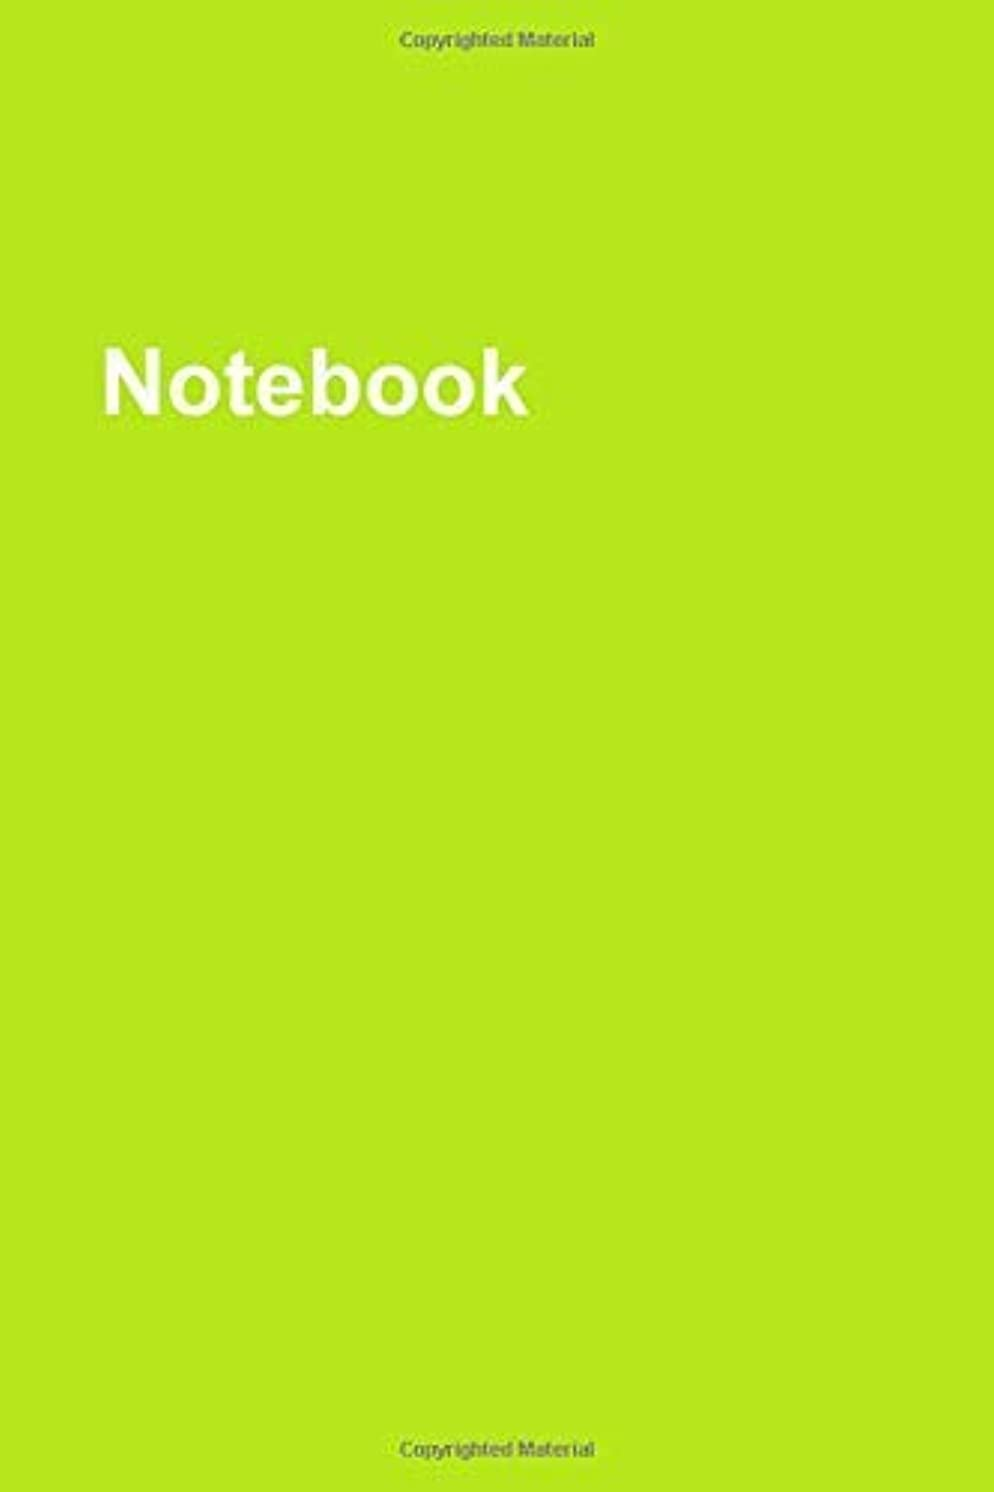 Notebook: Lined 6 x 9 (inches) White Paper Notebook - 104 Pages - Cover: Yellow [並行輸入品]